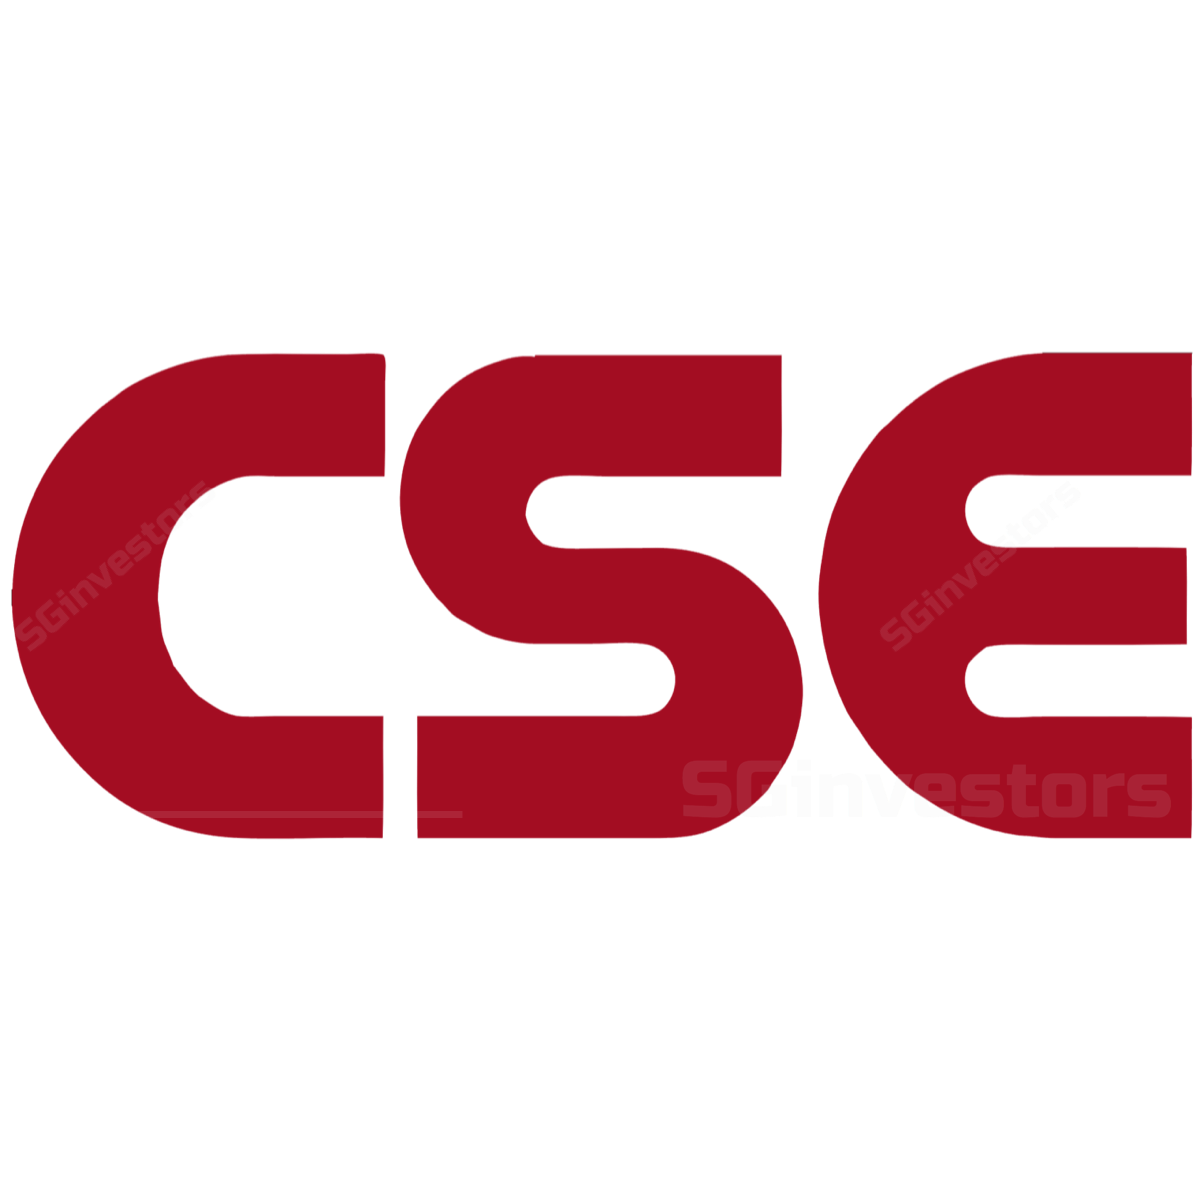 CSE Global - DBS Vickers 2017-02-28: Improving prospects are priced in